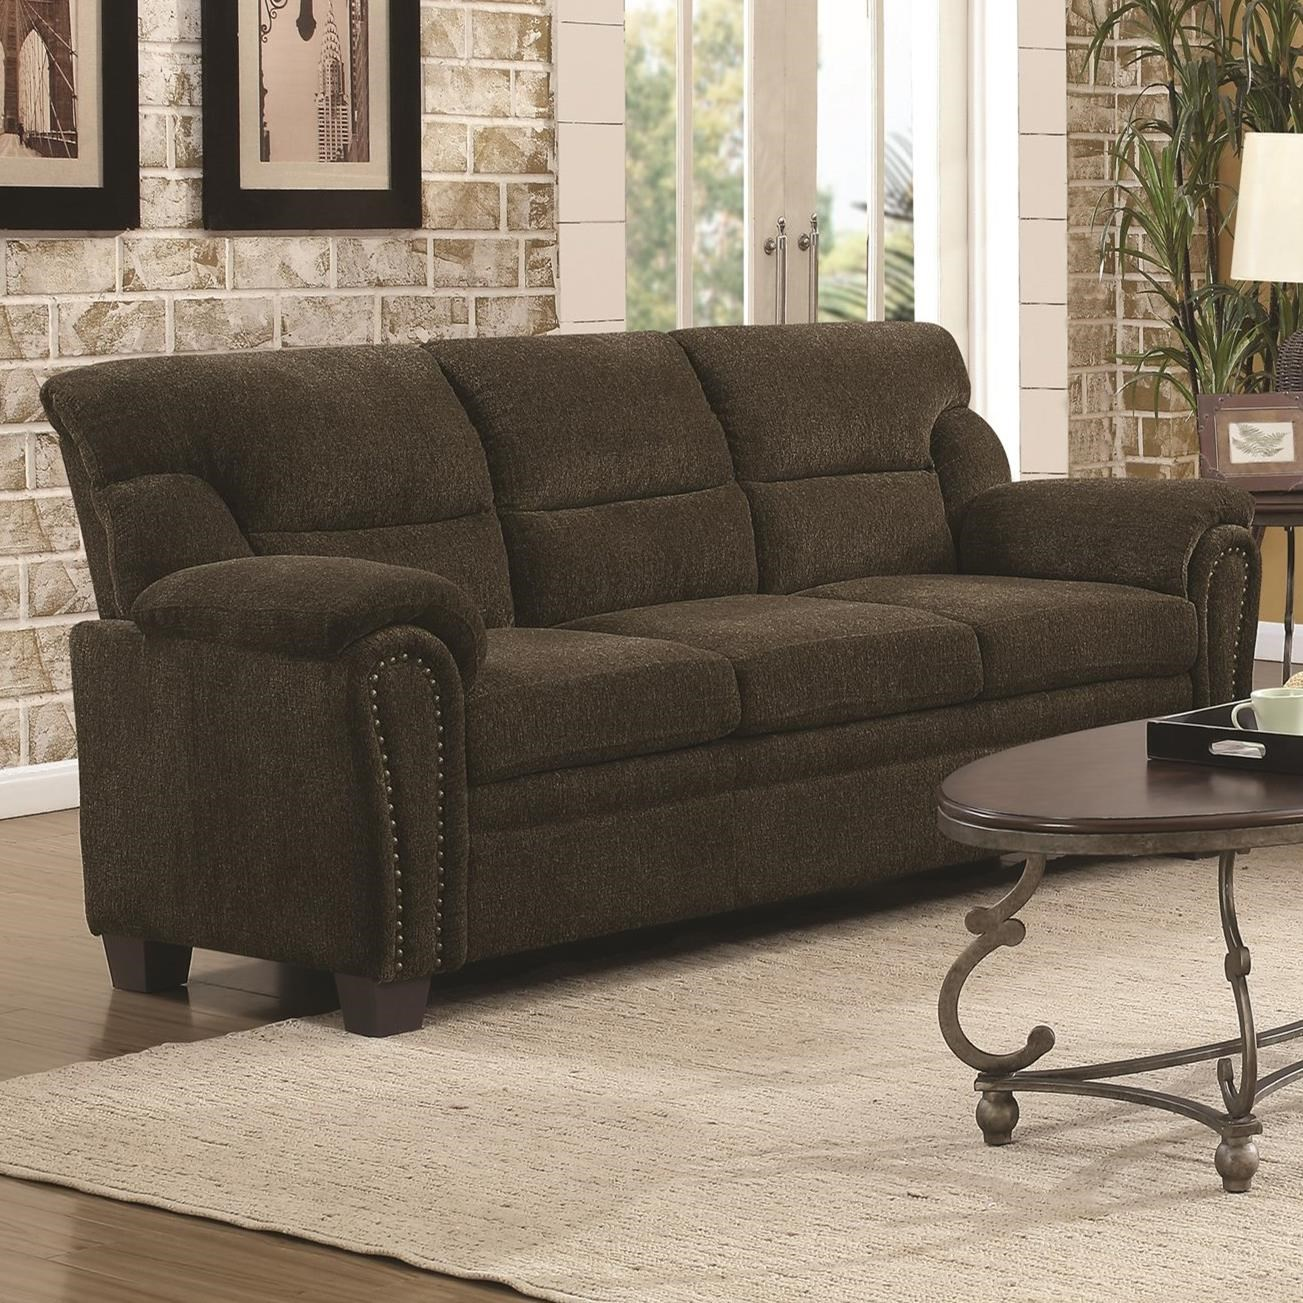 Sofa Mart Denali 506571 Sofa Pricepro Grocery And Furniture Store In